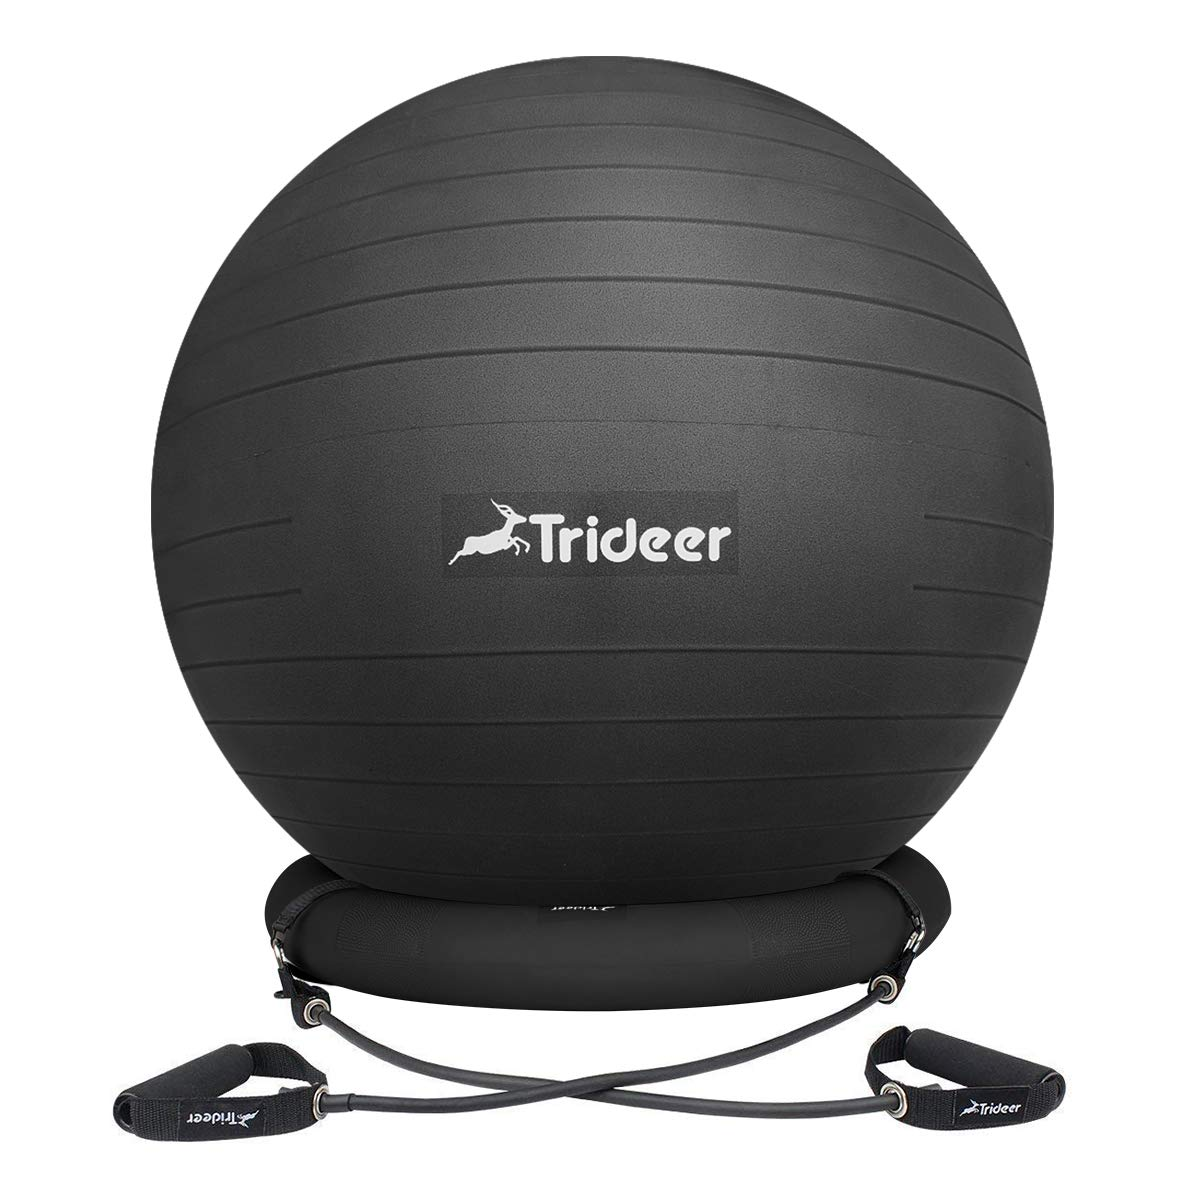 Trideer Ball Chair, Exercise Stability Yoga Ball with Base & Resistance Bands for Home and Office Desk, Flexible Ball Seat with Pump, Improves Balance, Core Strength & Posture (Black, 65cm)